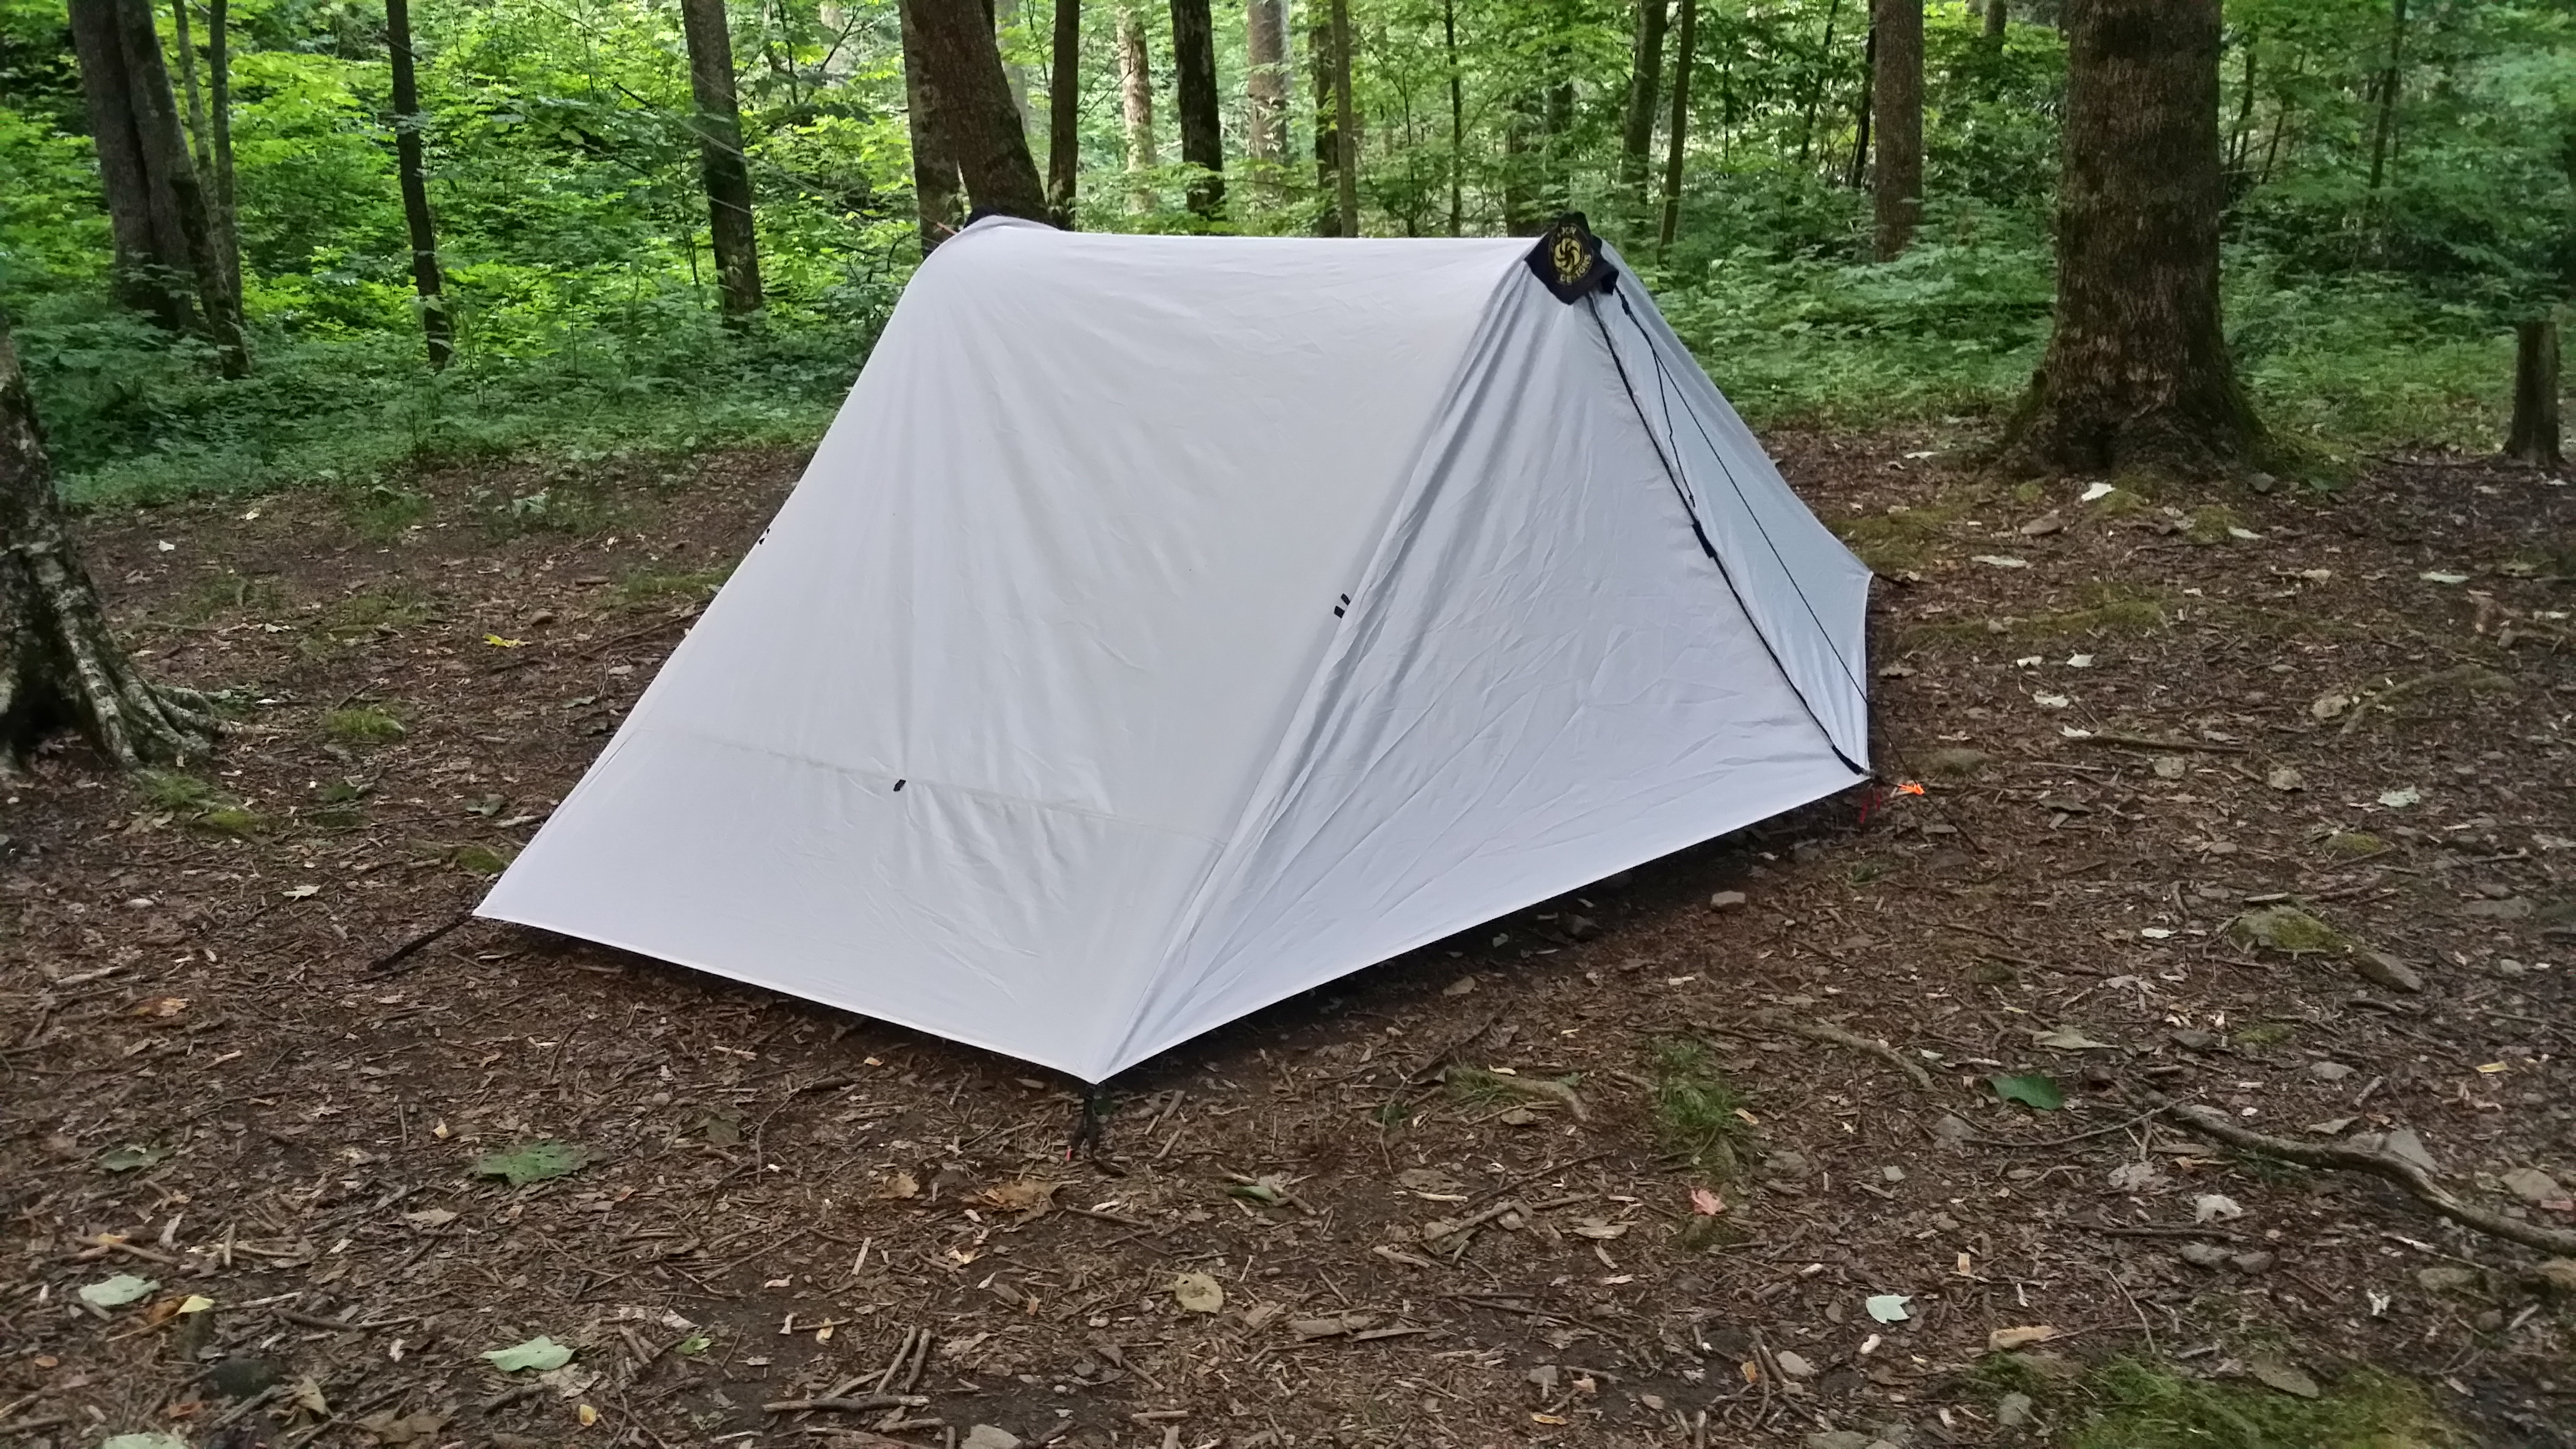 The SMD Lunar Duo Outfitter at Backcountry C&site 12 GSMNP & Shelter u2013 Bulldogu0027s Droppings